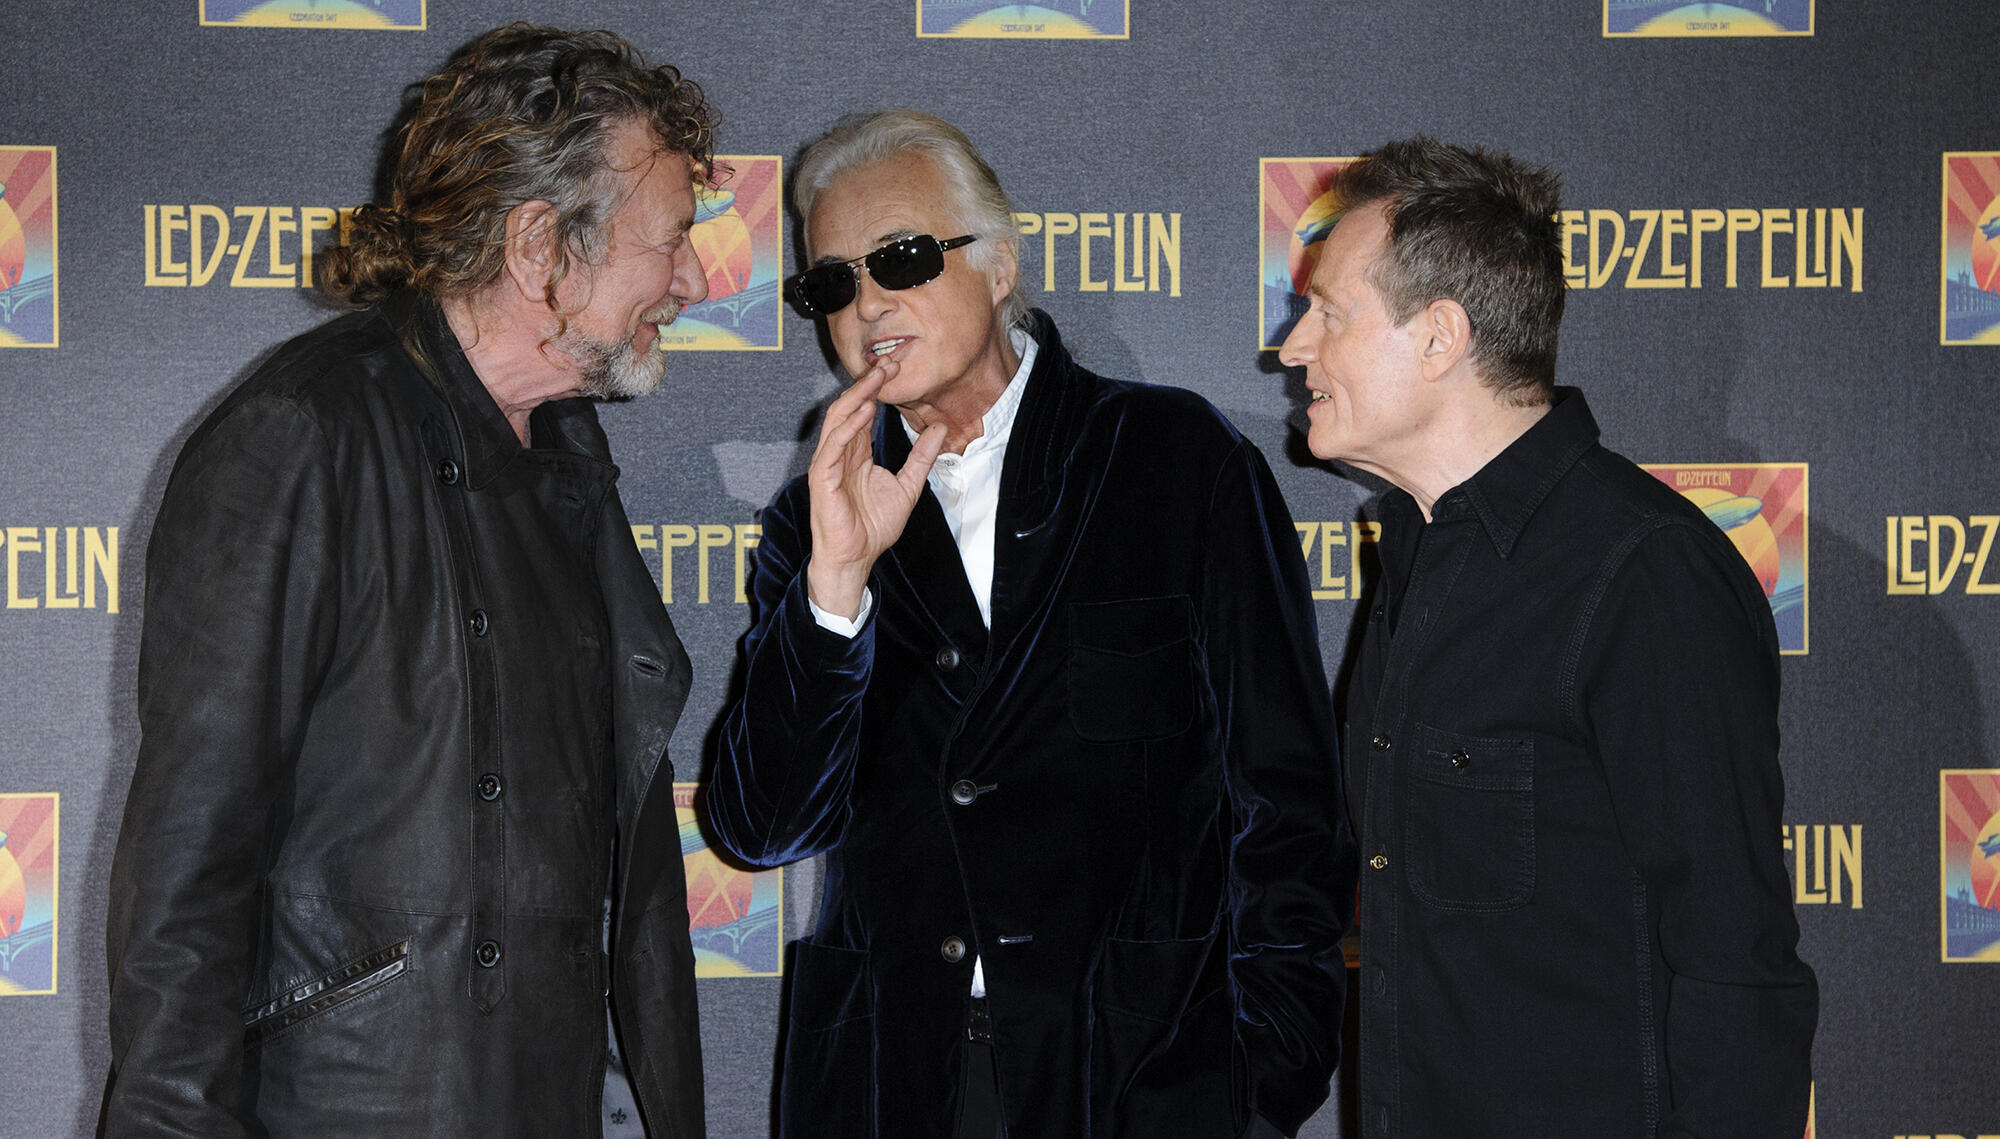 Led Zeppelin Invites Fans To Global 'Celebration Day' Watch Party Saturday